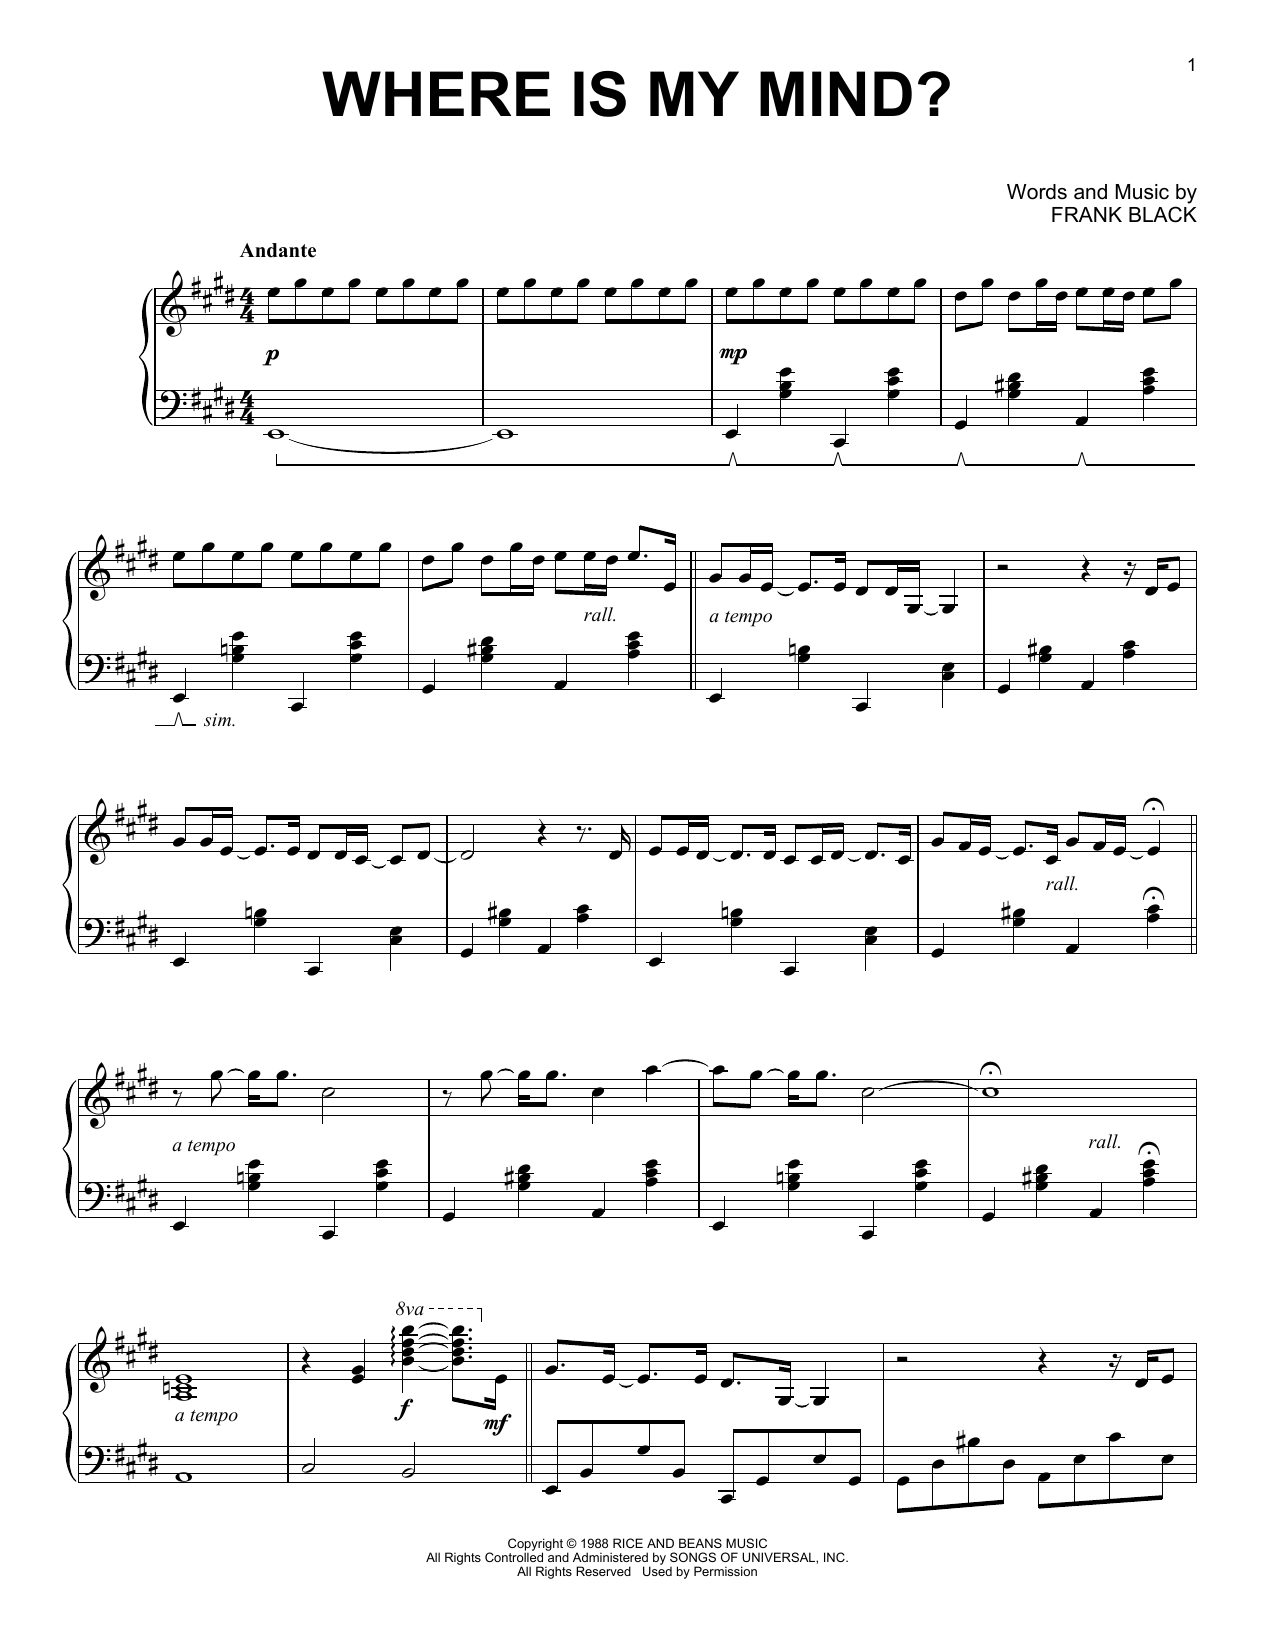 The Pixies Where Is My Mind Sheet Music Notes, Chords   Download Printable  Piano Solo PDF Score   SKU 15